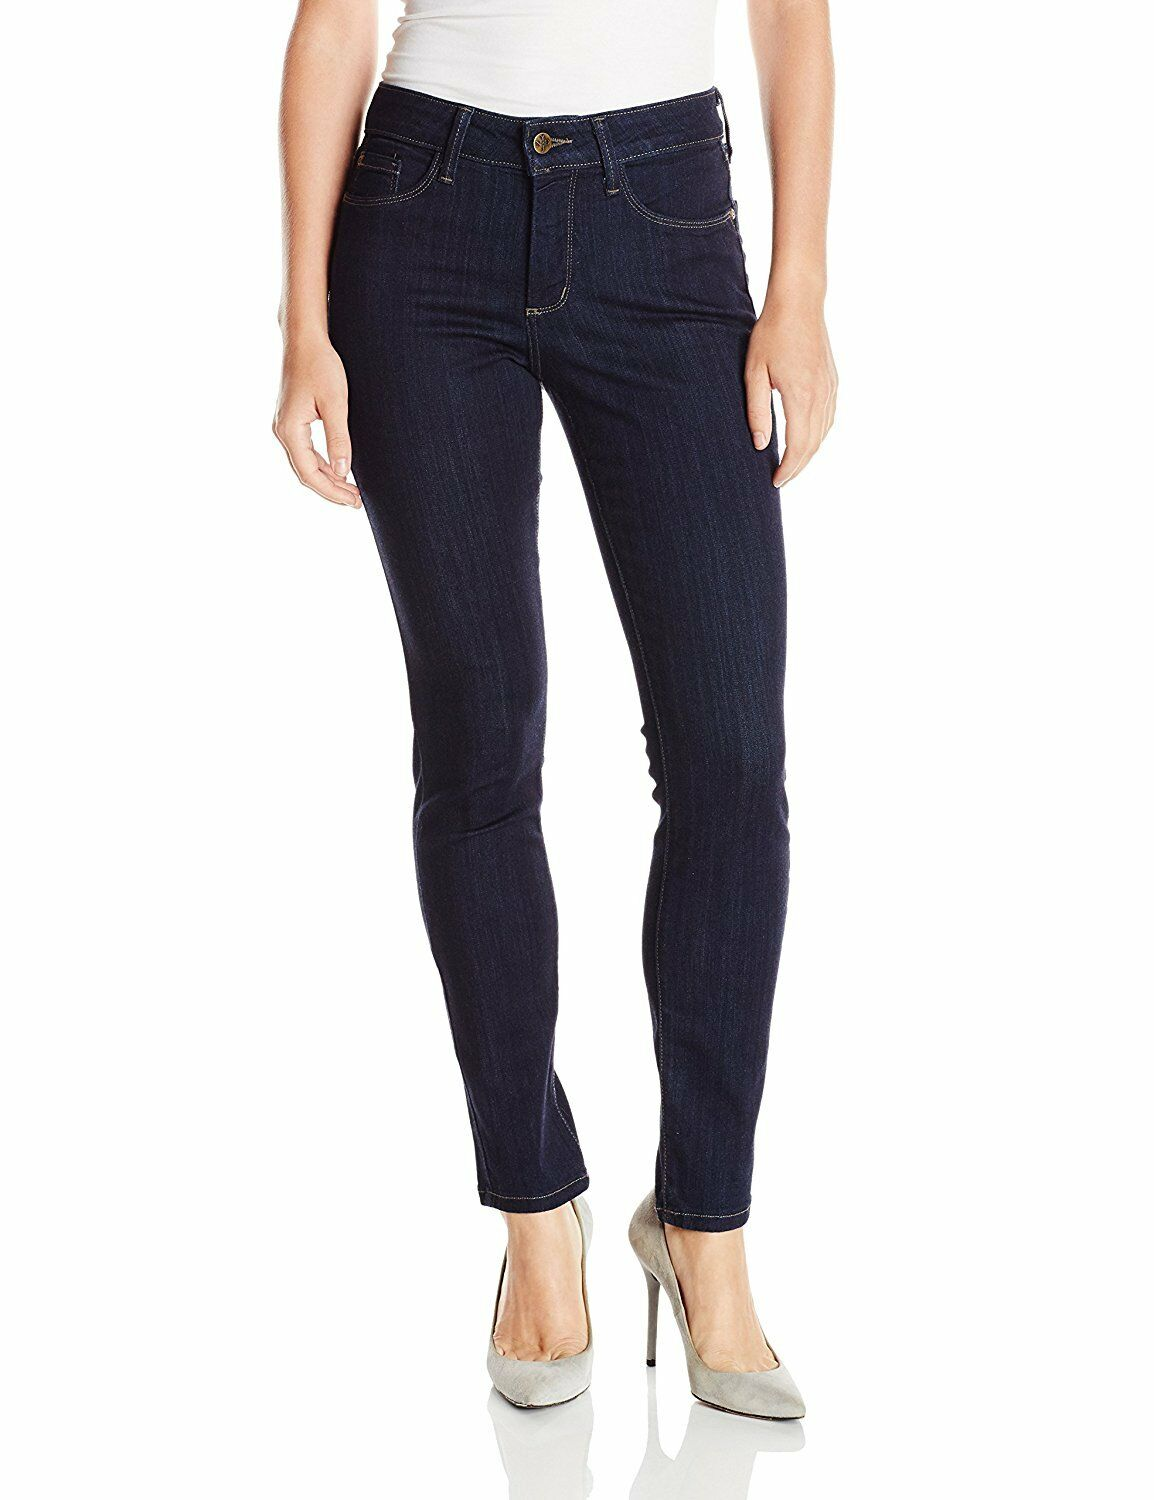 NYDJ Womens Collection PAER1436 Alina Legging Fit Jeans in Sure